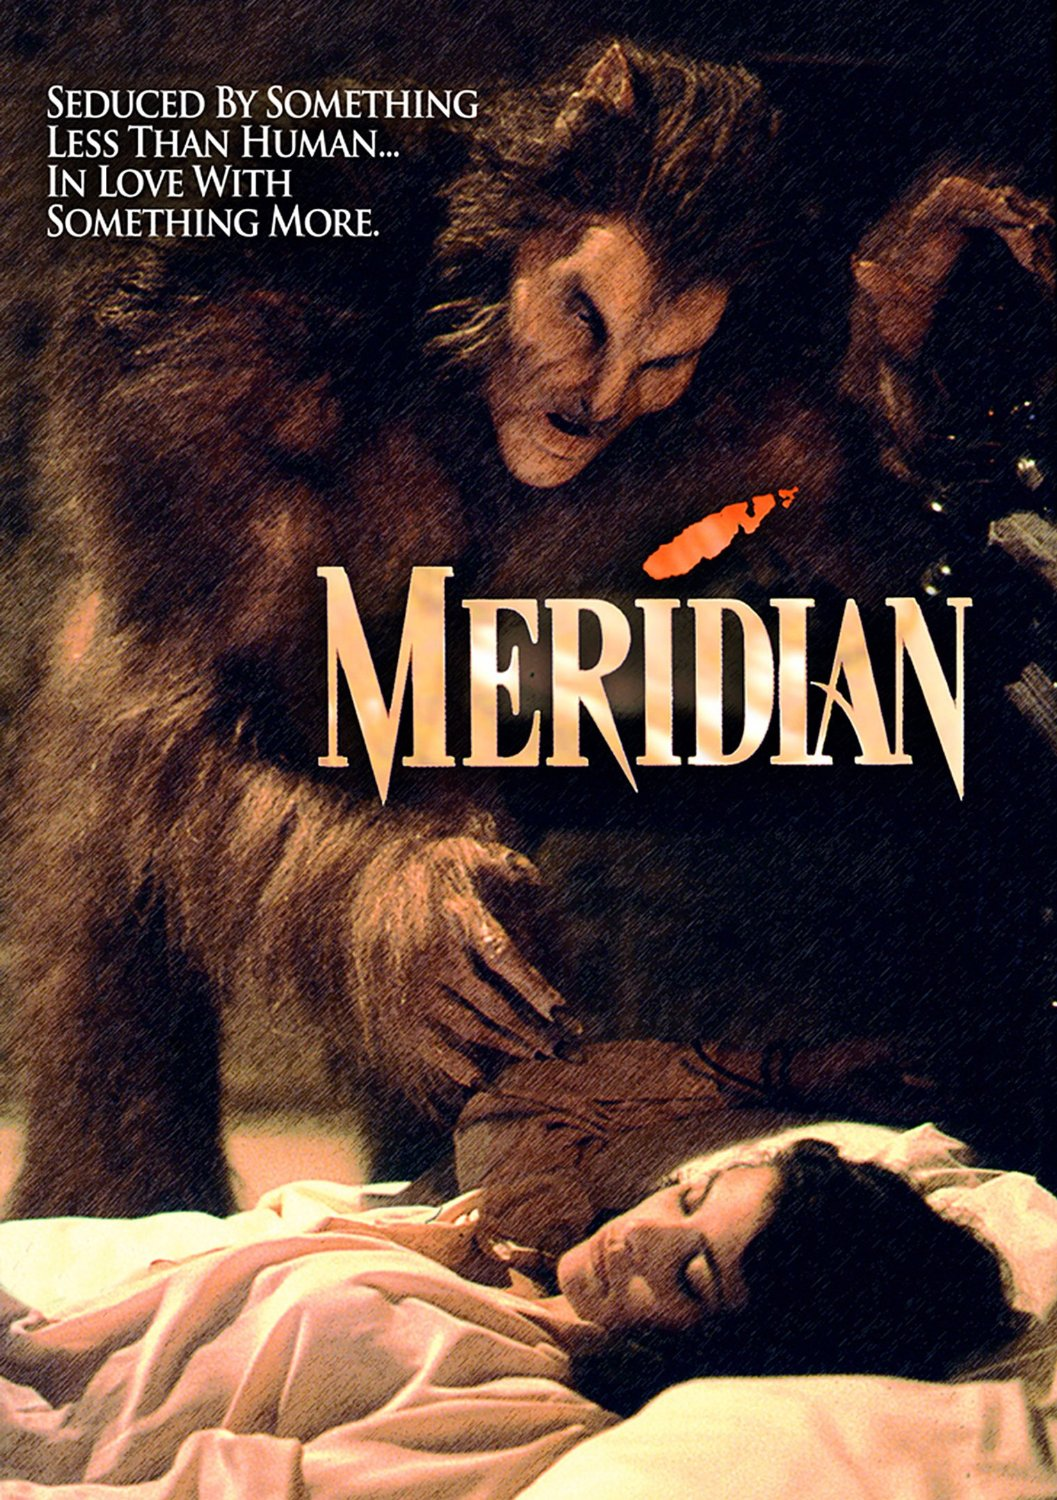 18+ Meridian (1990)Dual Audio Movie Download And Watch Online 480p